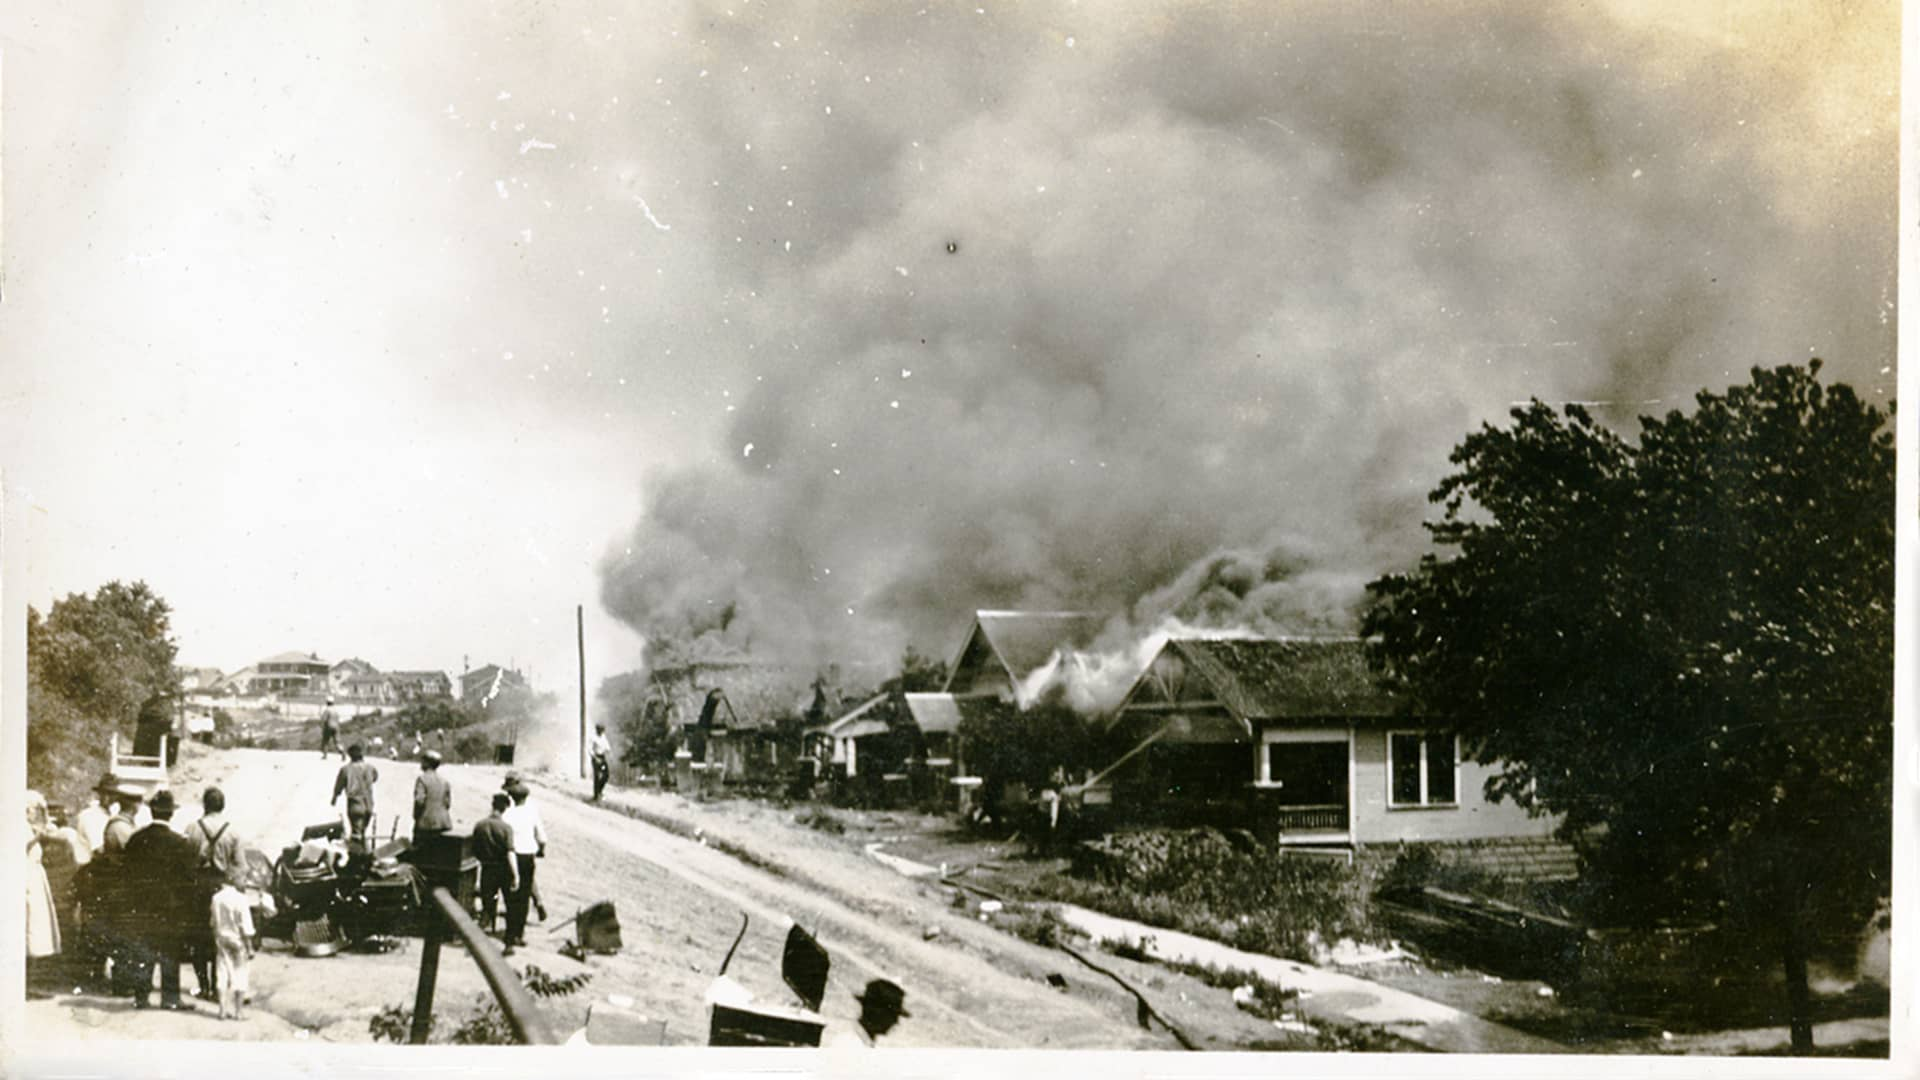 A group of people looking at smoke in the distance coming from damaged properties following the Tulsa, Oklahoma, racial massacre, June 1921.